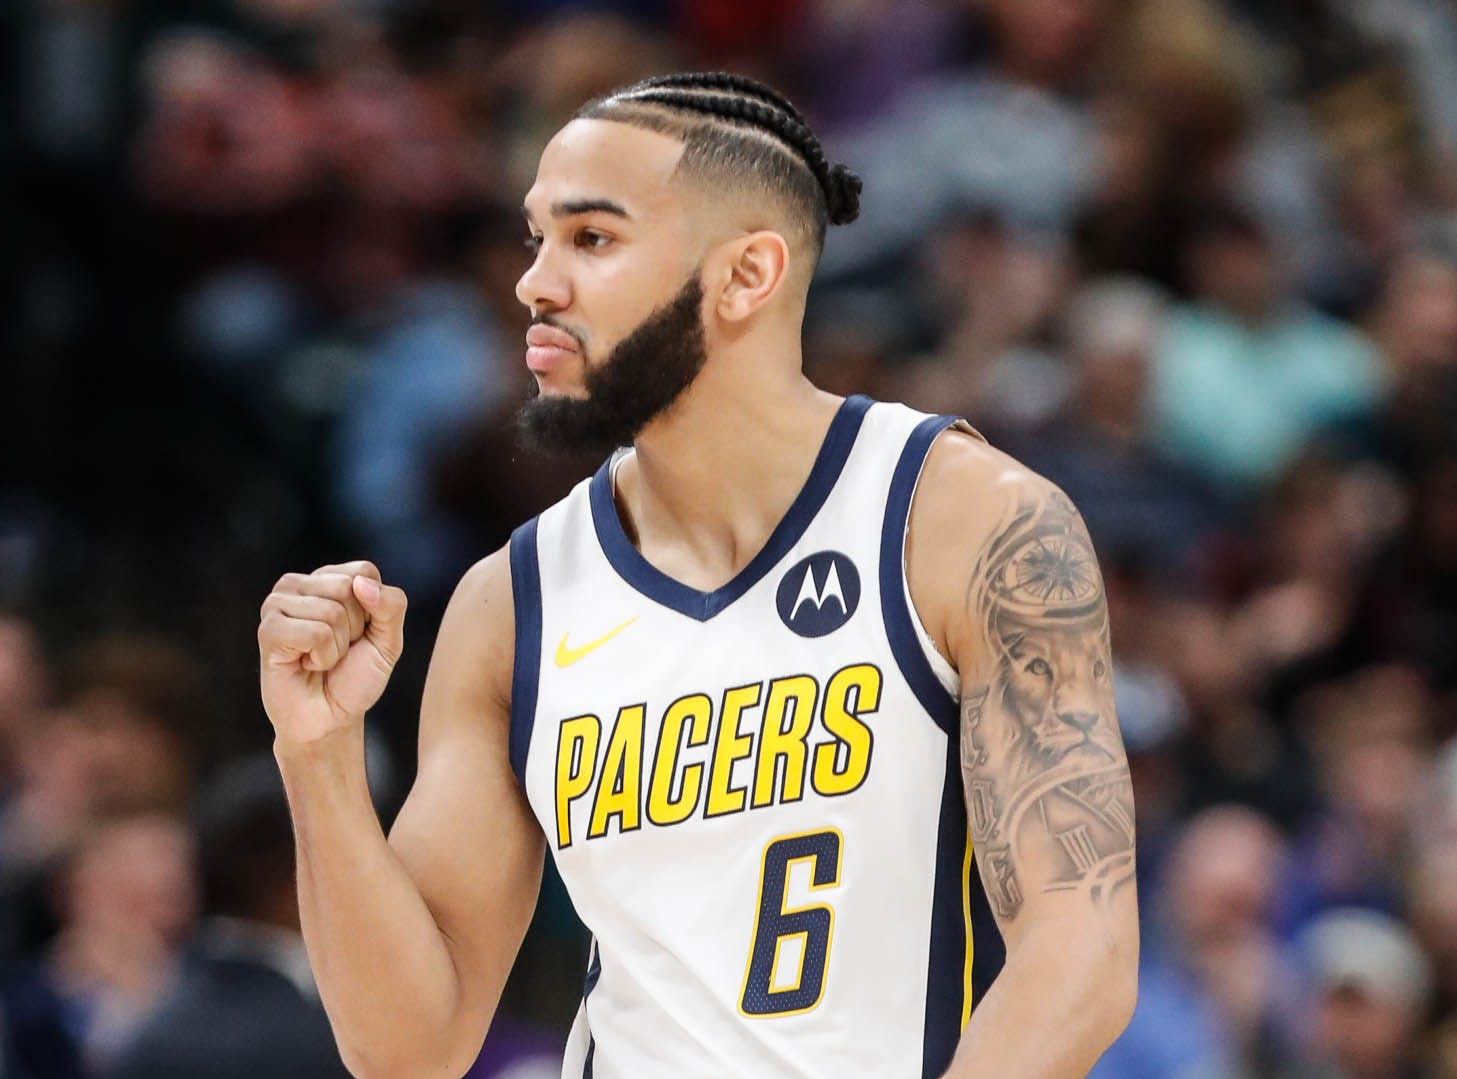 Indiana Pacer's guard Cory Joseph (6), celebrates a call during a game between the Indiana Pacers and the Detroit Pistons at at Bankers Life Fieldhouse in Indianapolis on Friday, Dec. 28, 2018.